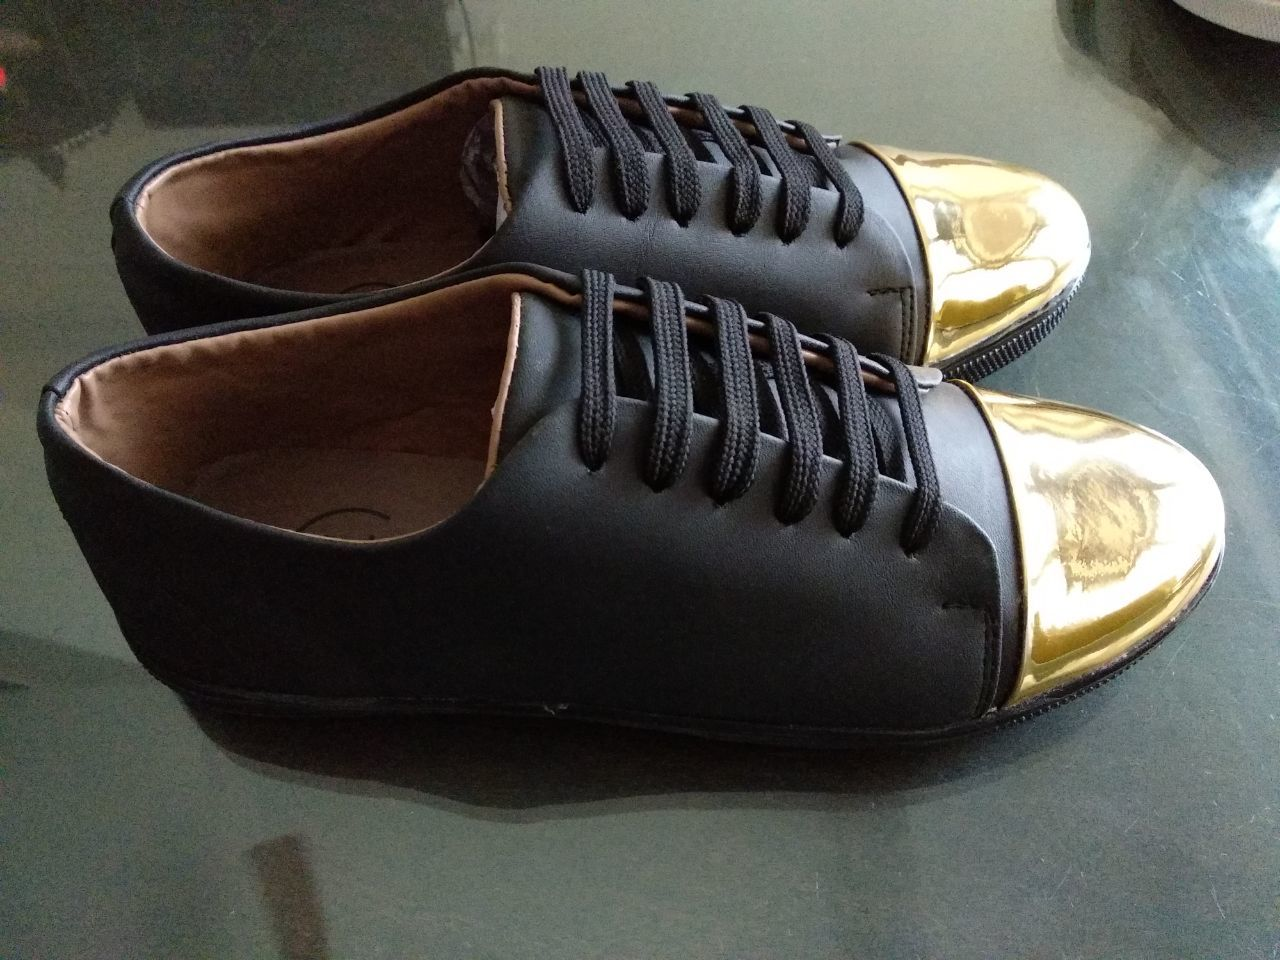 CASUAL FANCY SNEAKERS FOR MEN'S ON PVC SOLE